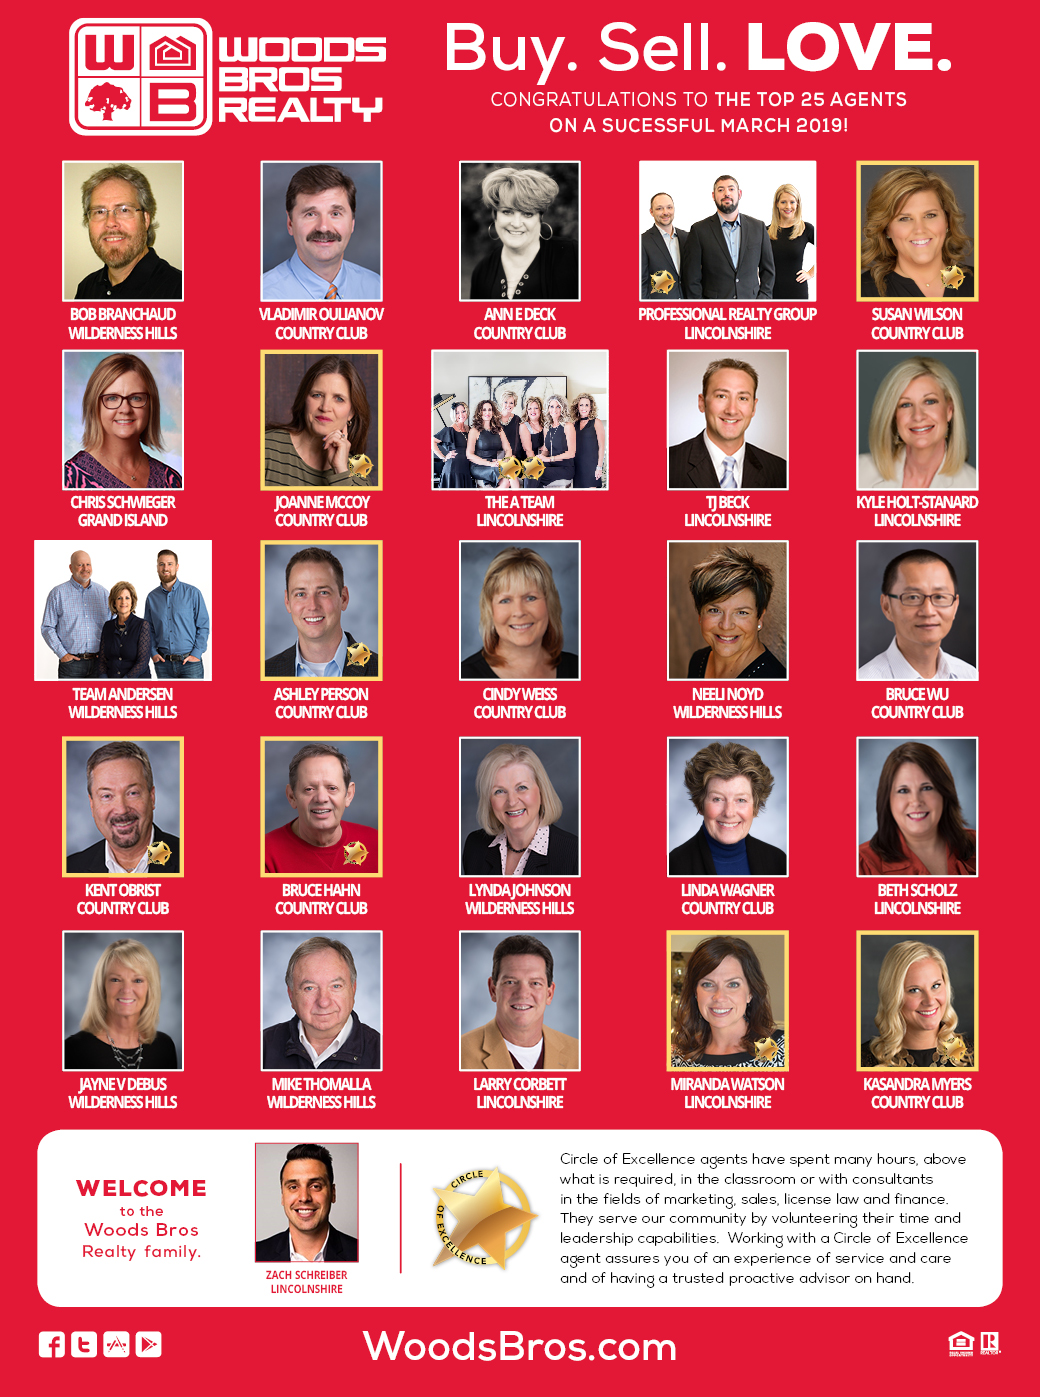 Woods Bros Realty Top Agents Mar 2019